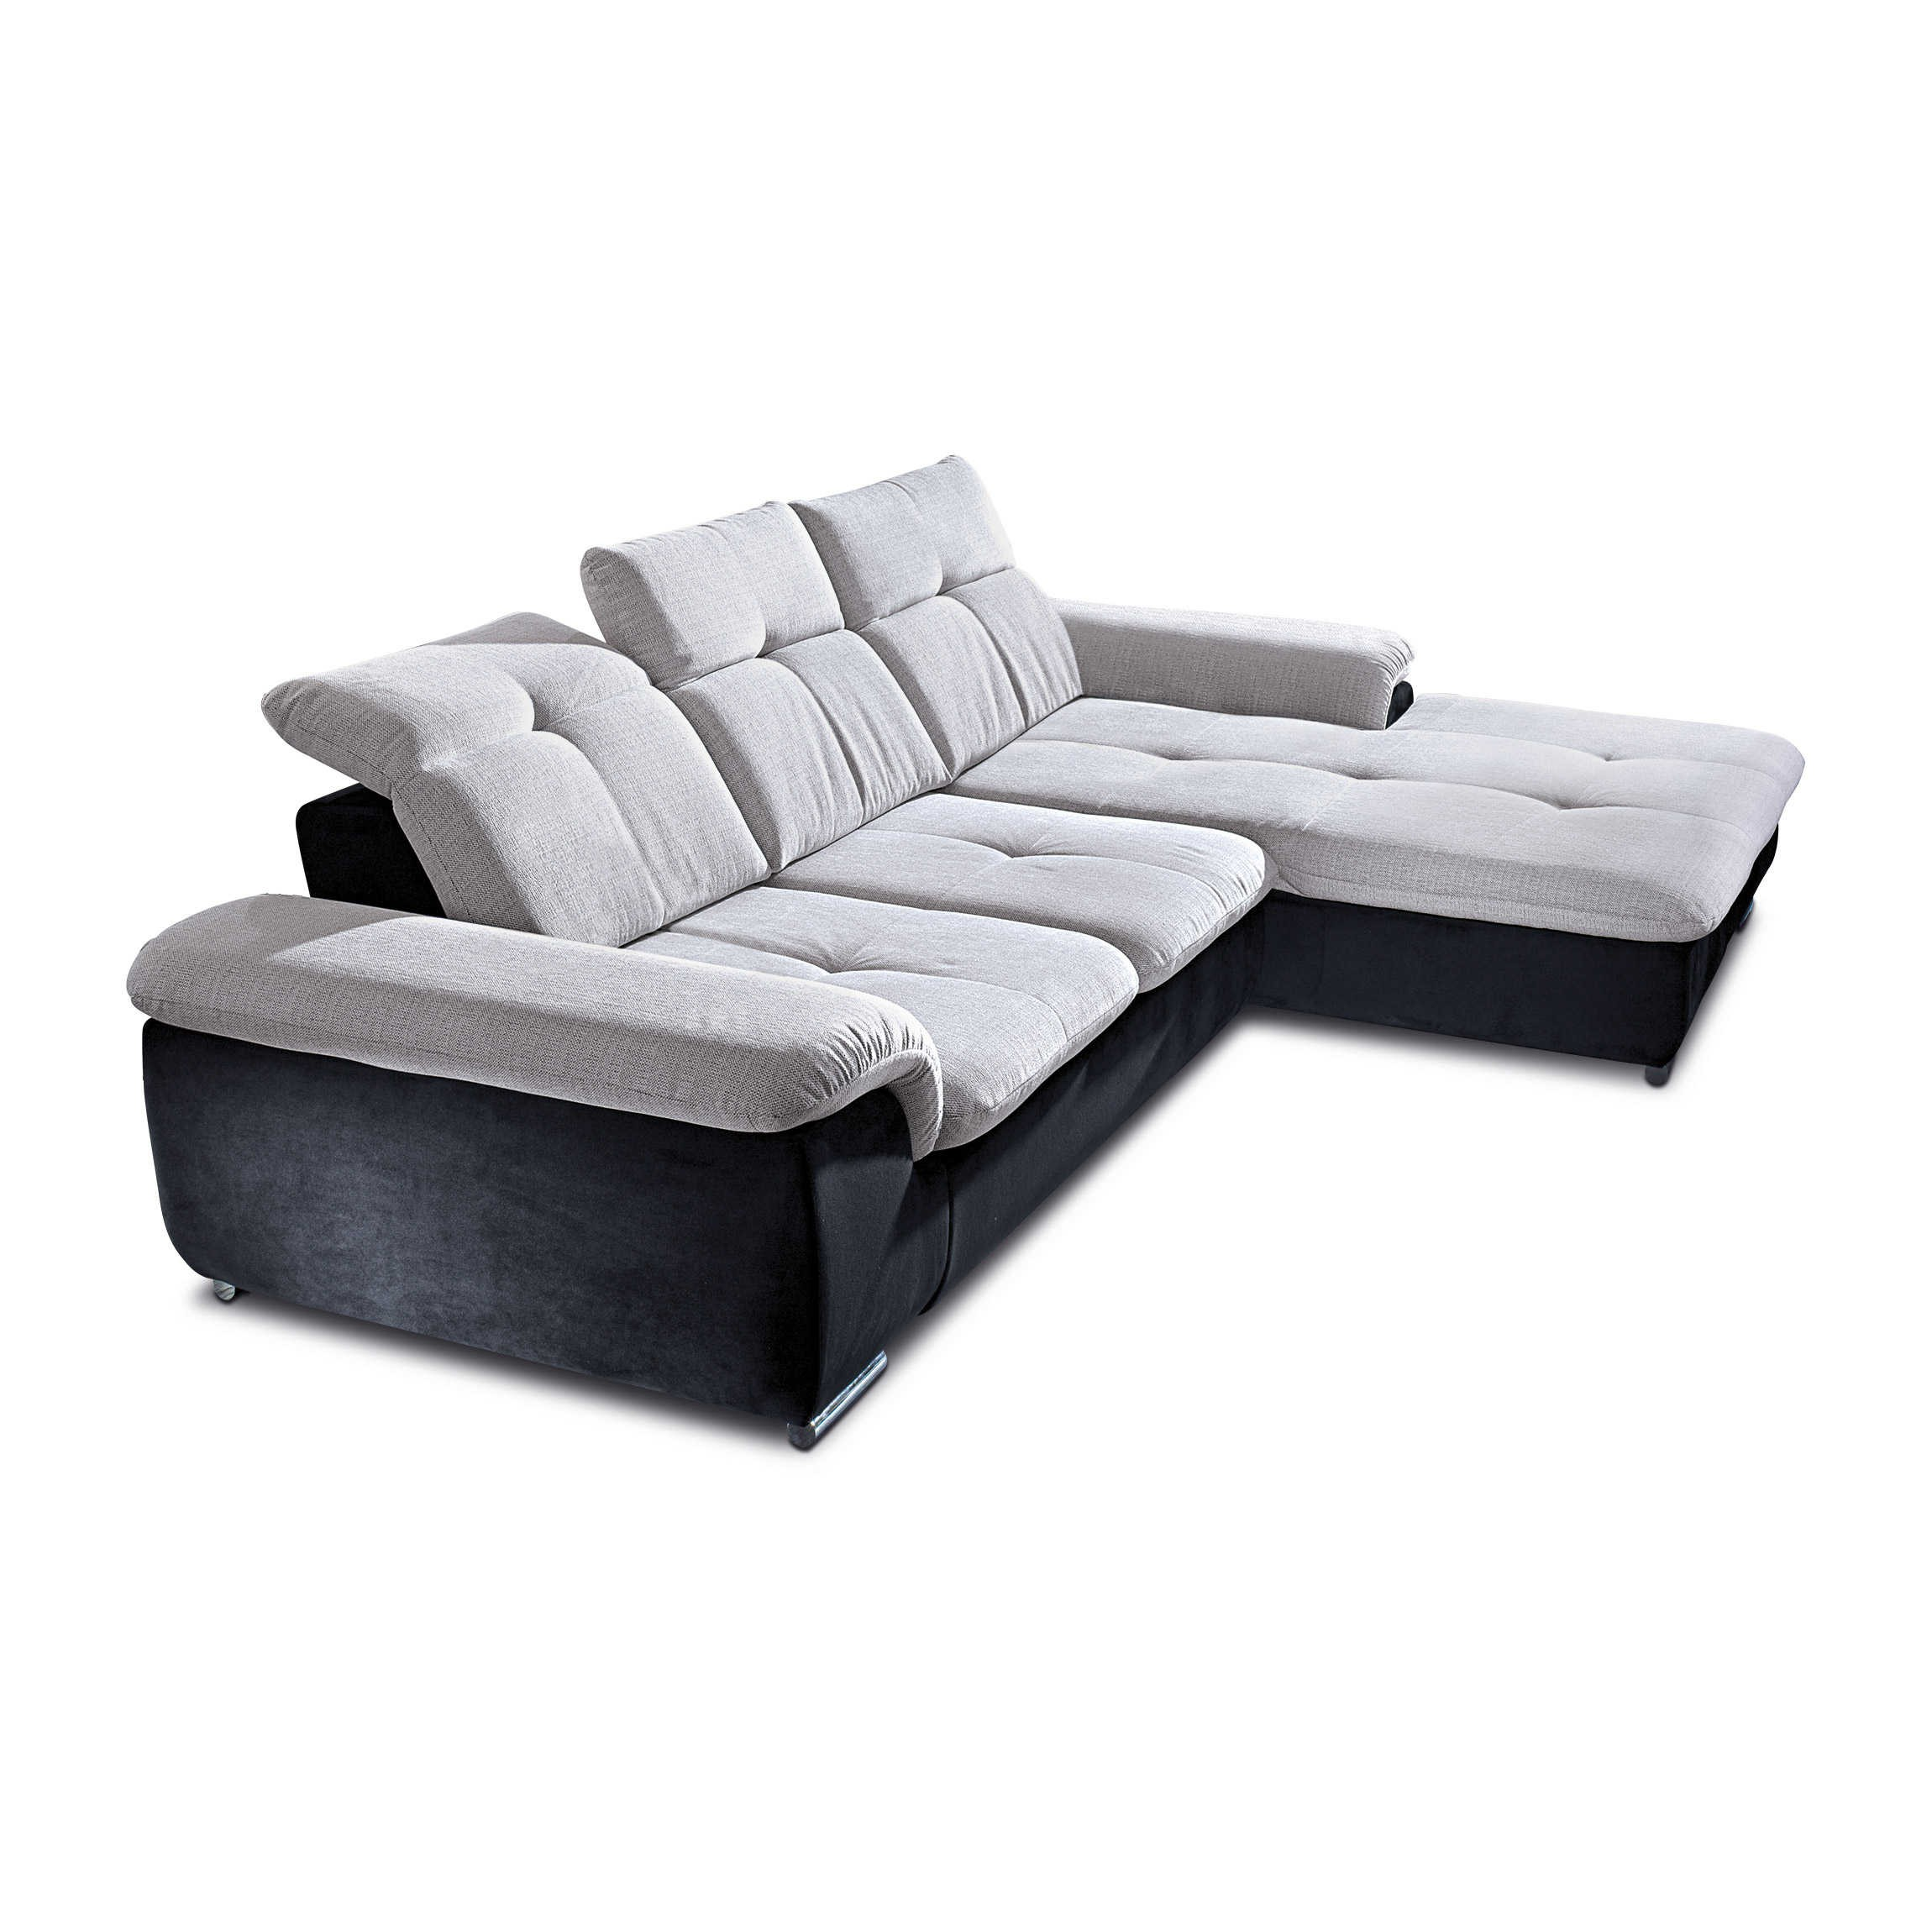 ecksofa andy grau stoff online kaufen bei woonio. Black Bedroom Furniture Sets. Home Design Ideas